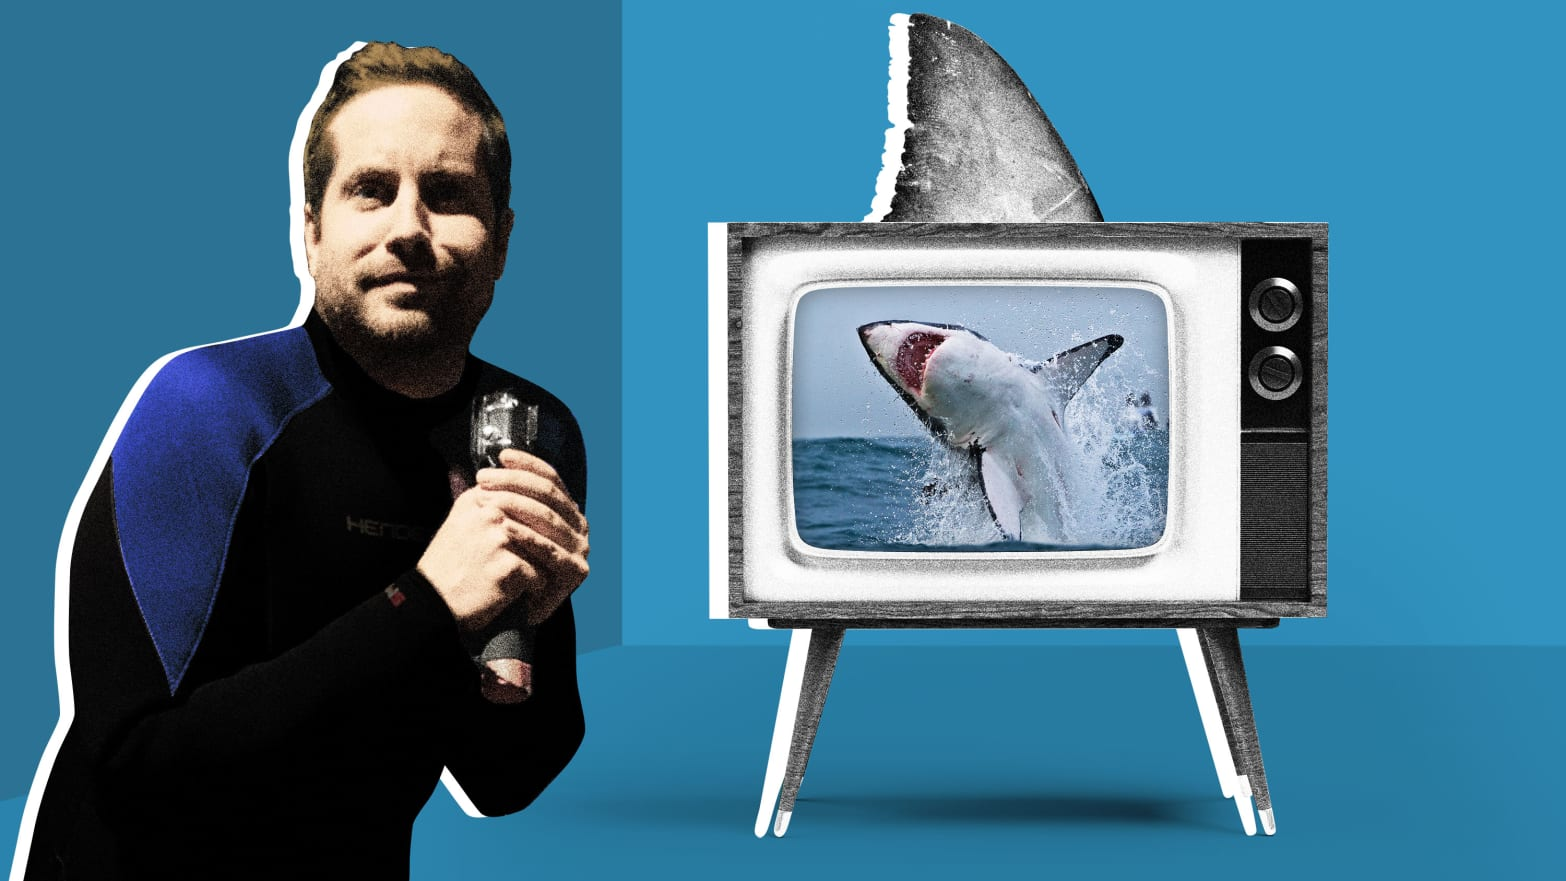 Why Do We Still Fantasize About Being Eaten by Sharks?